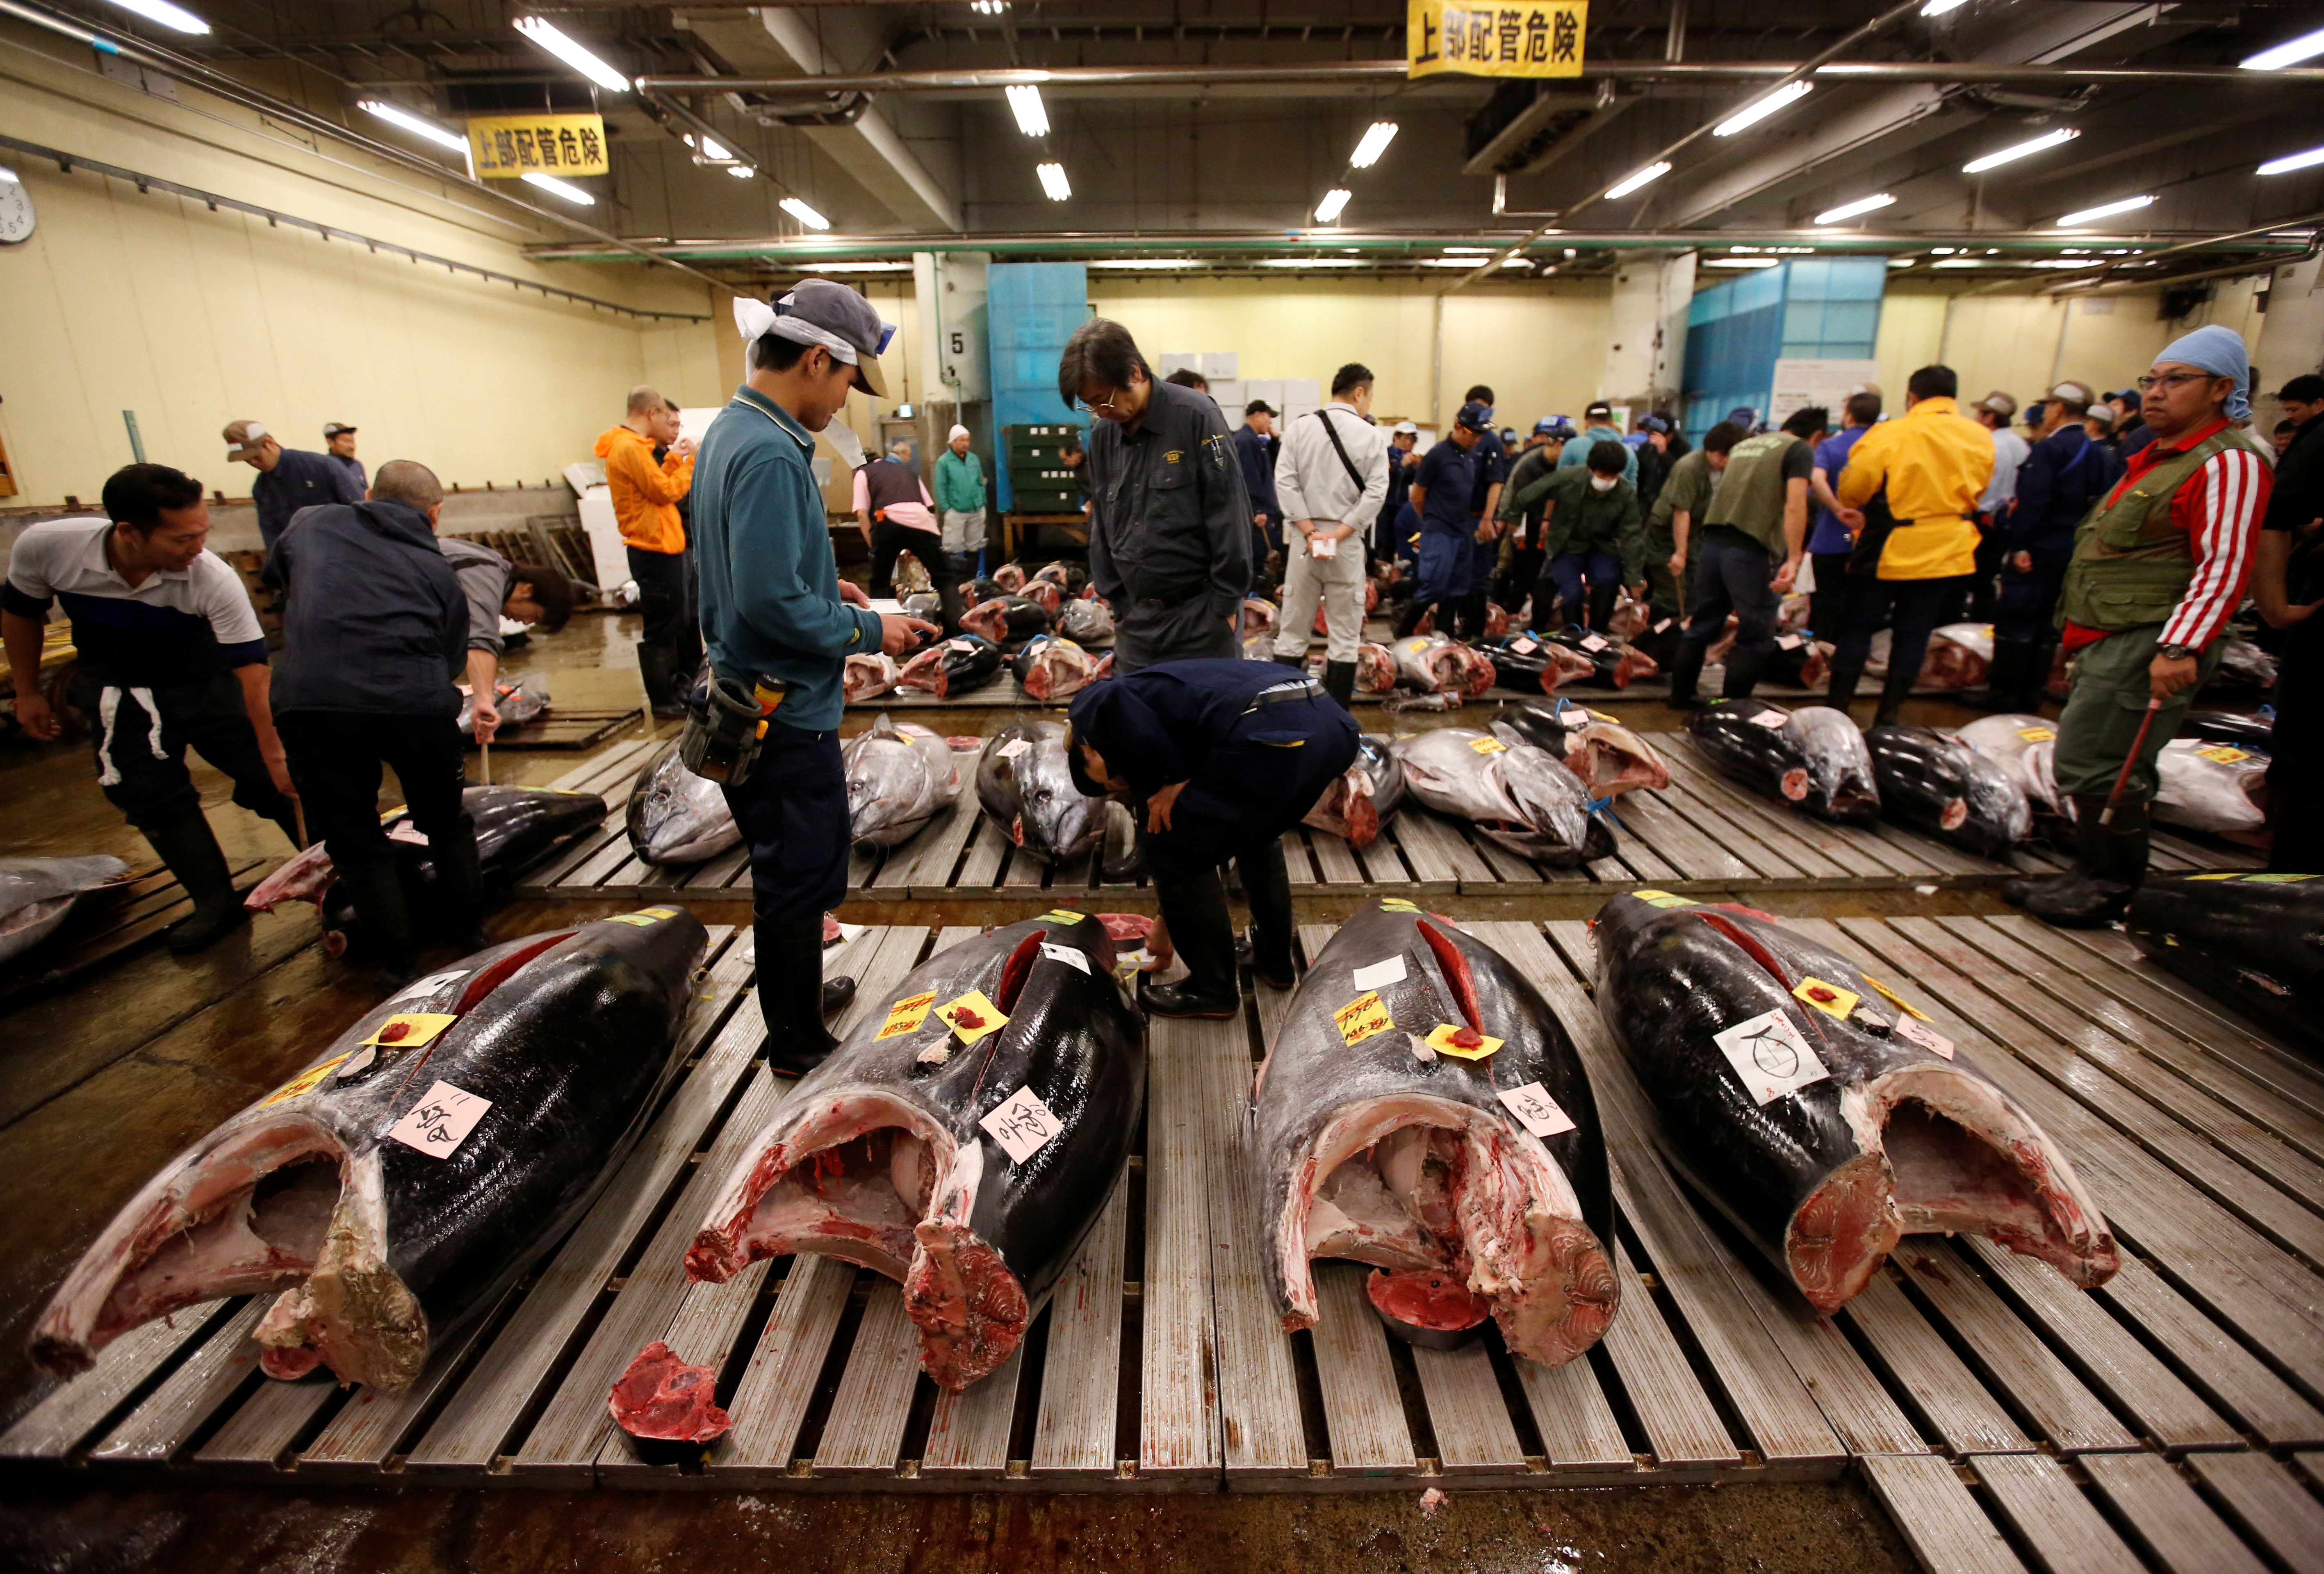 Wholesalers check the quality of fresh tuna fish at the Tsukiji fish market in Tokyo, Japan, Sept. 29, 2018.